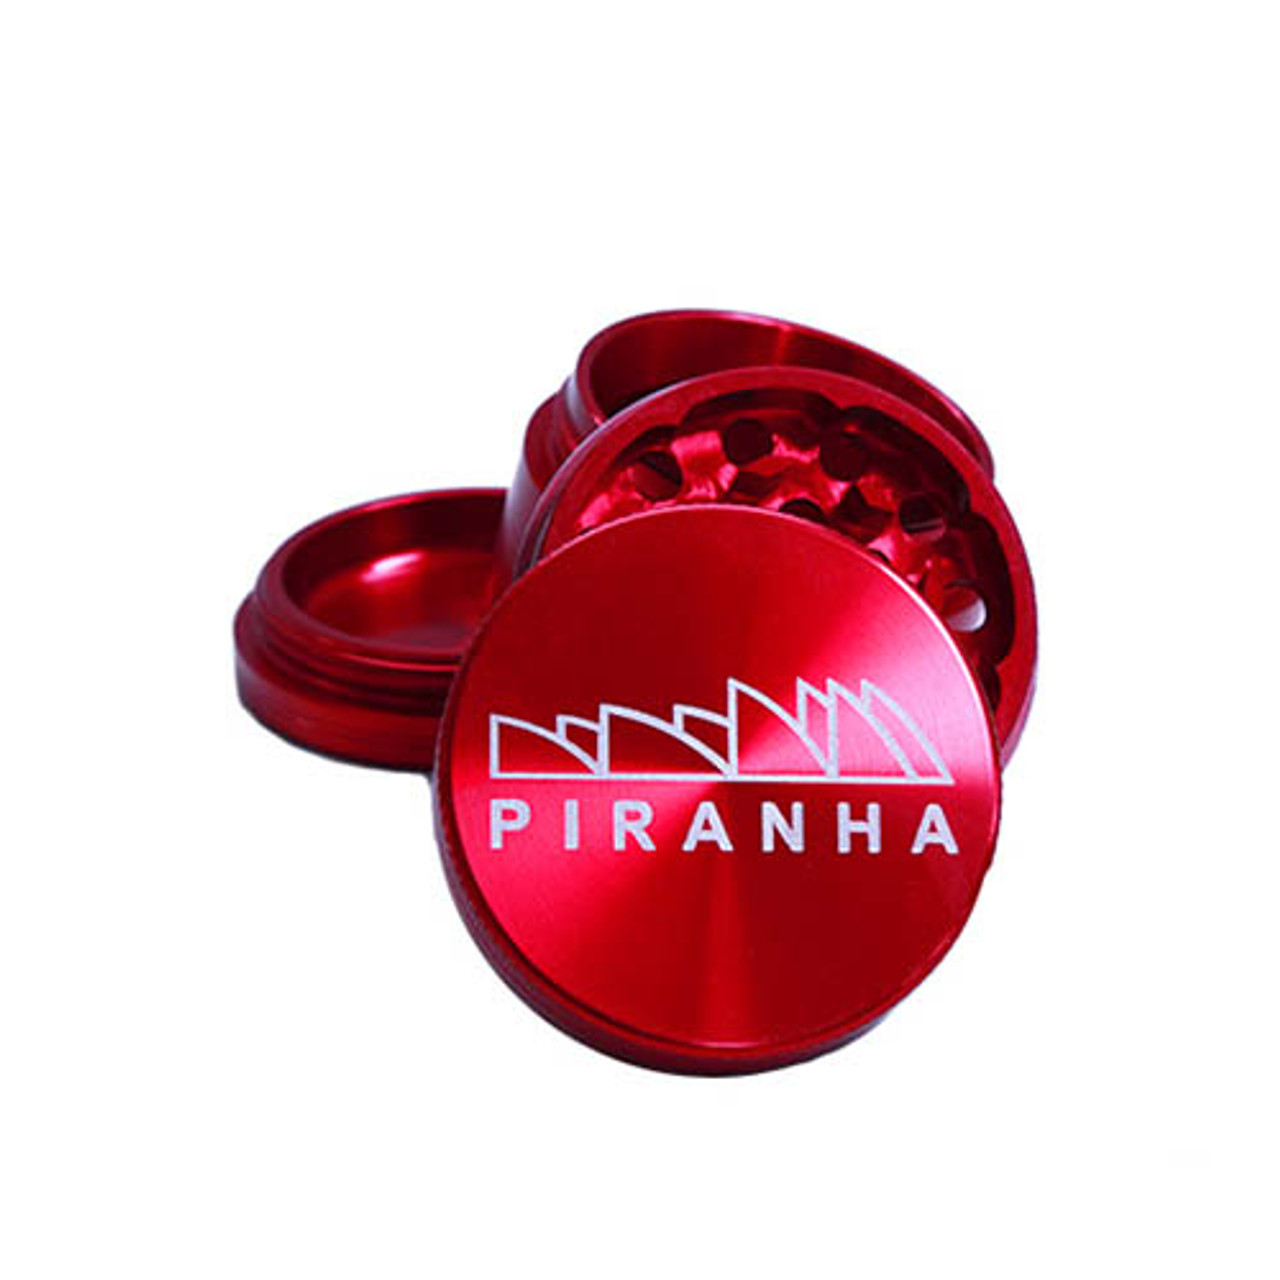 Piranha Grinder 4pc 2.0""